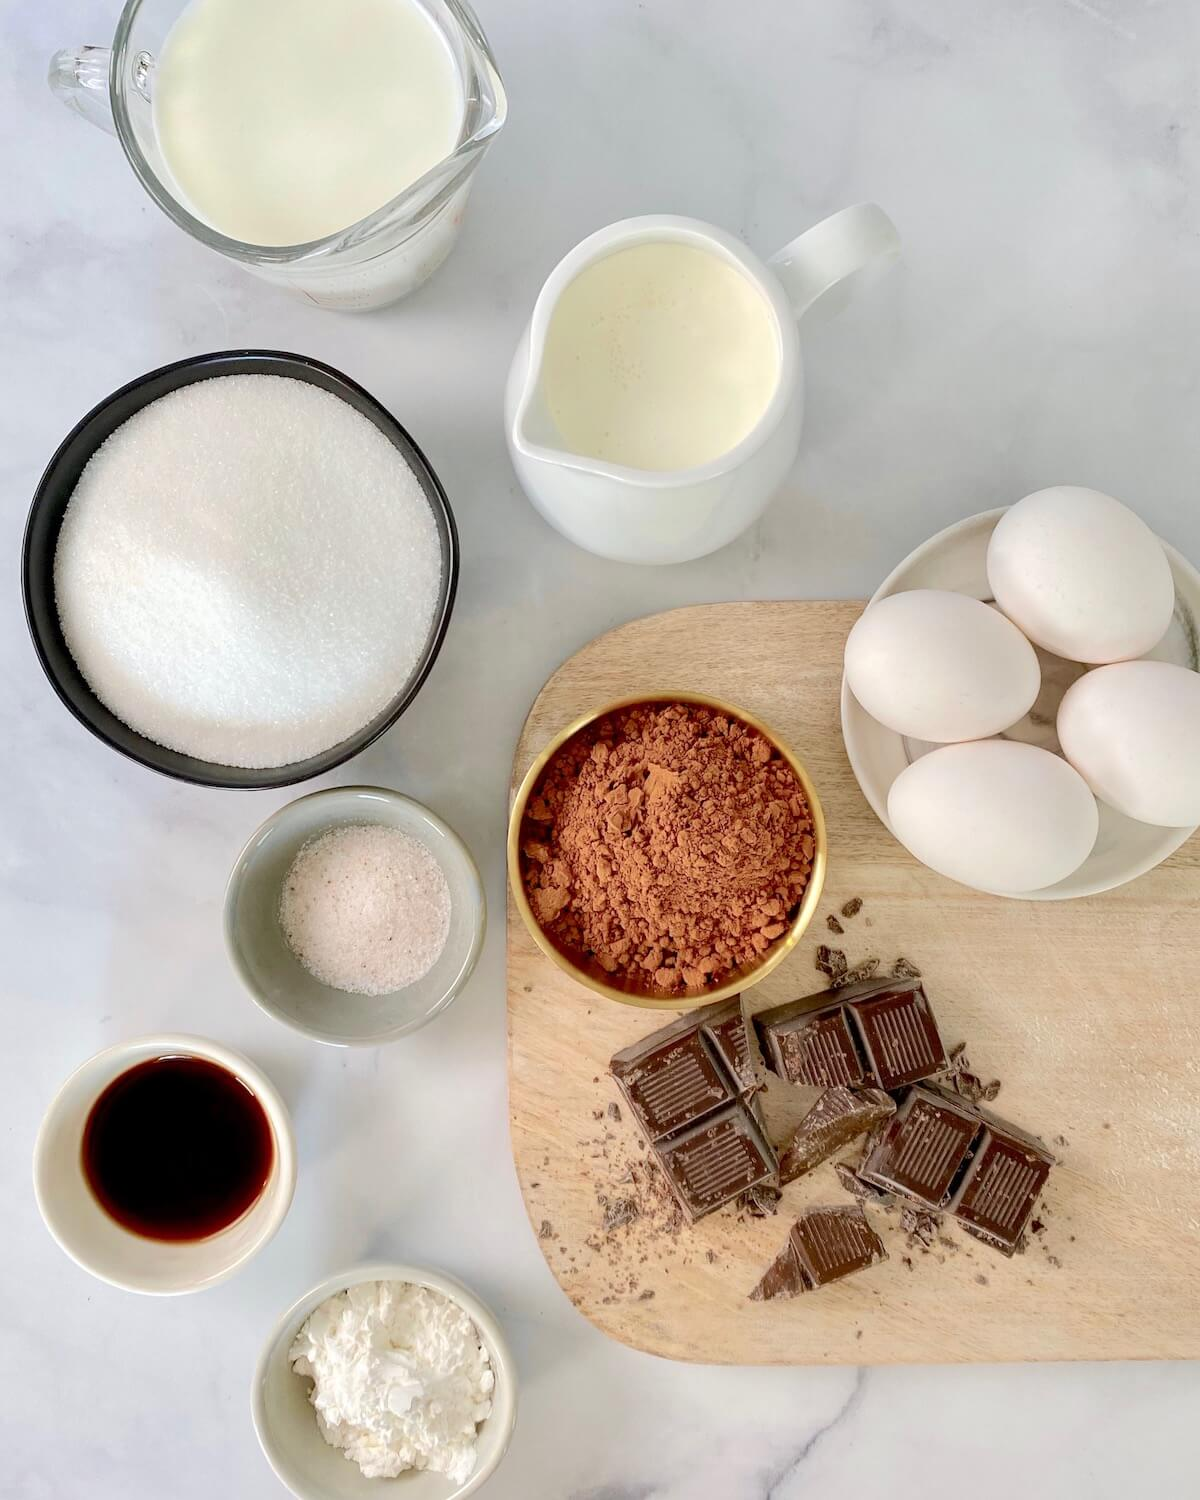 all ingredients for chocolate ice cream